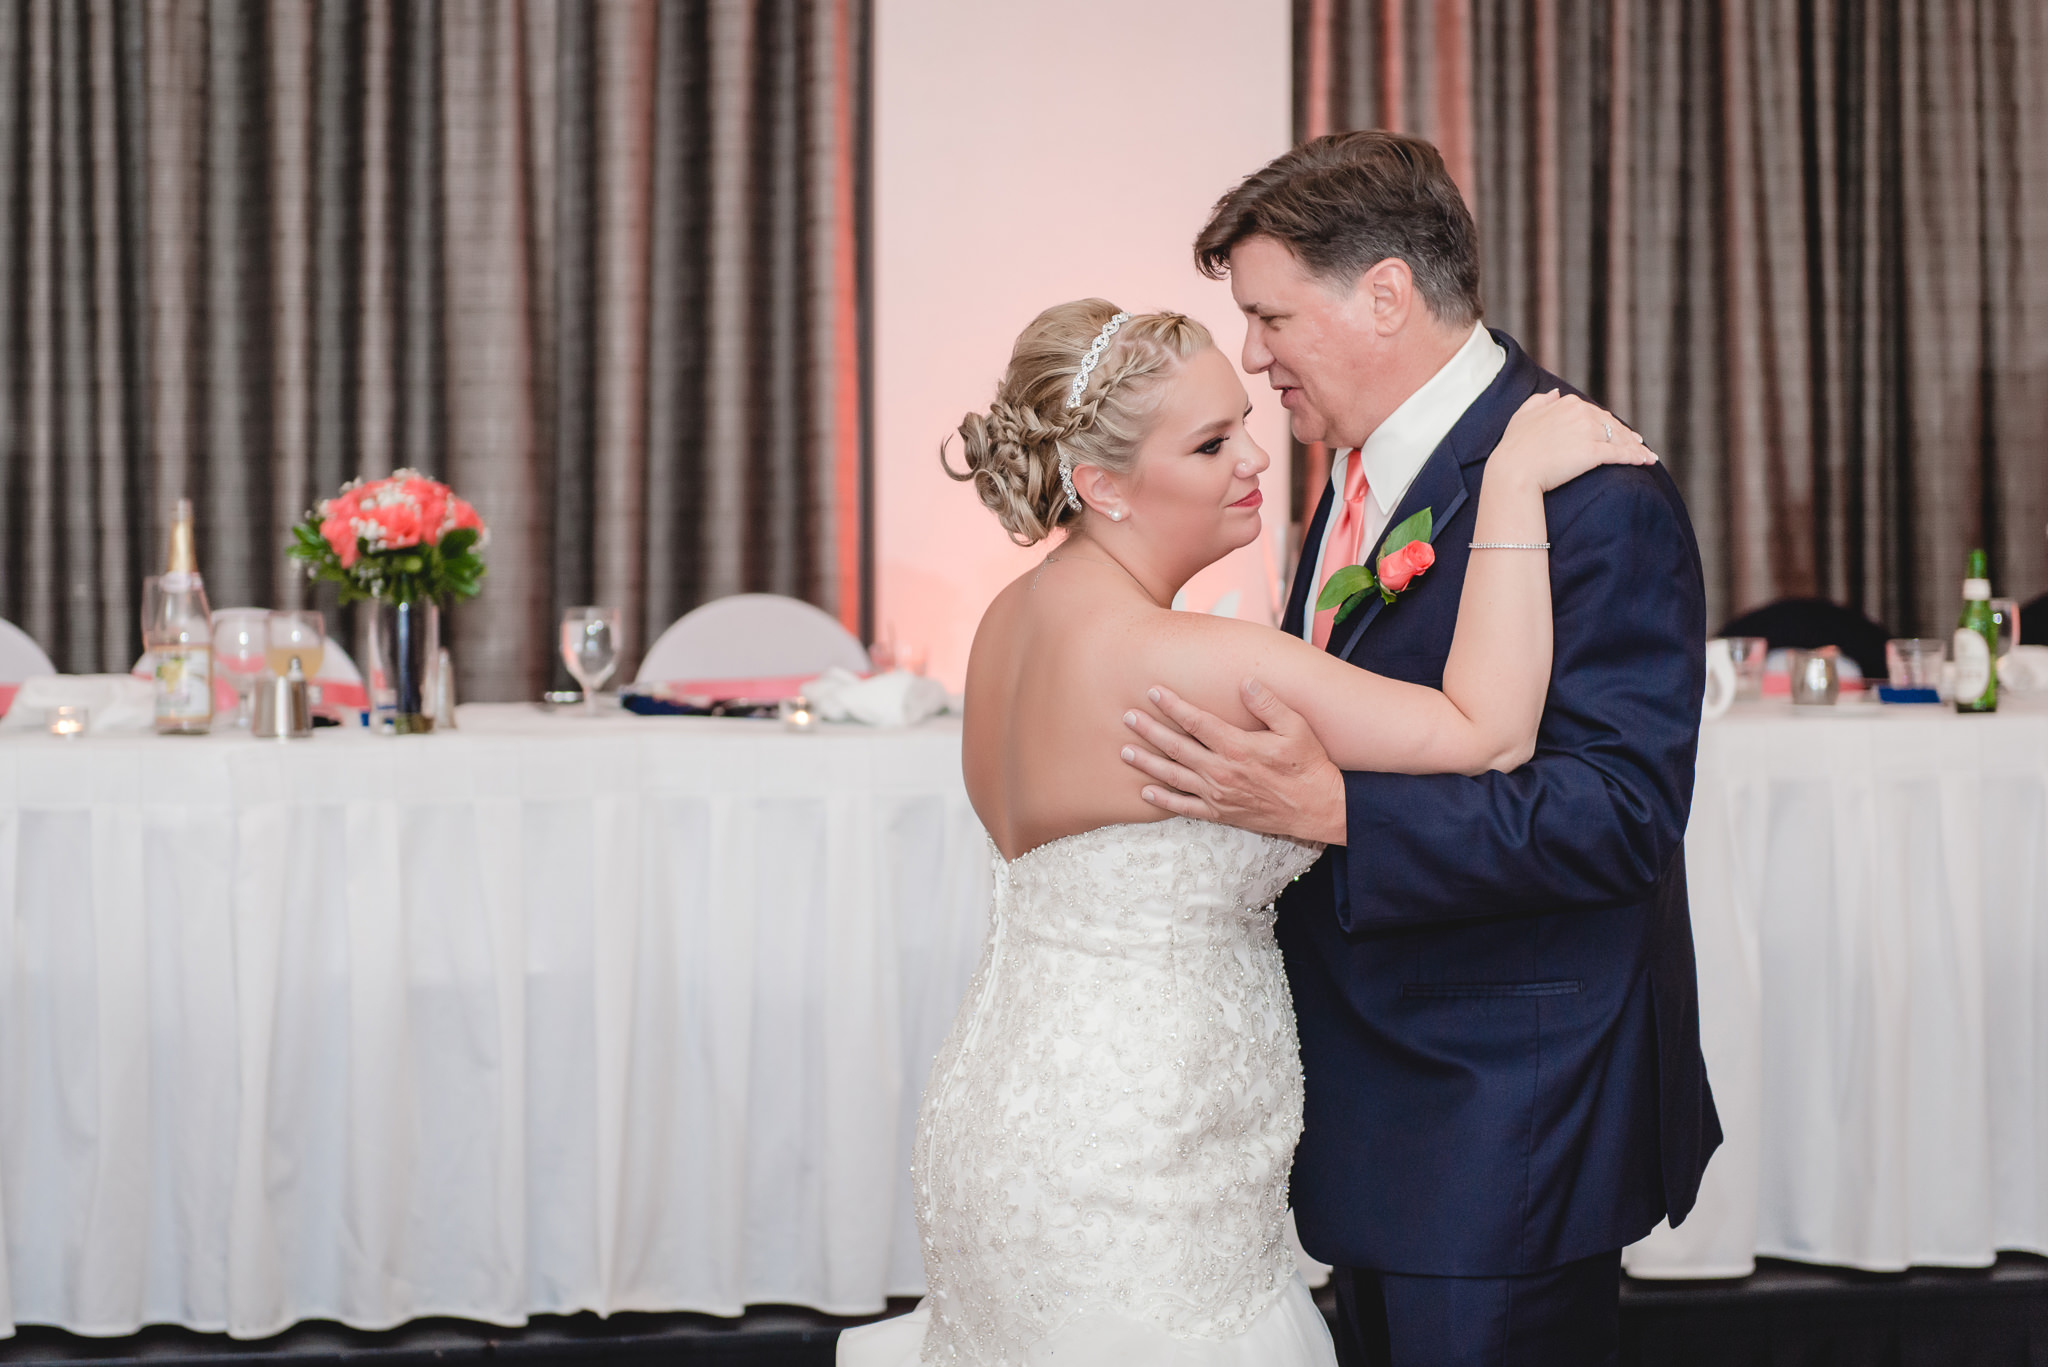 Bride dances with her father in the Three Rivers Room of the Pittsburgh Airport Marriott